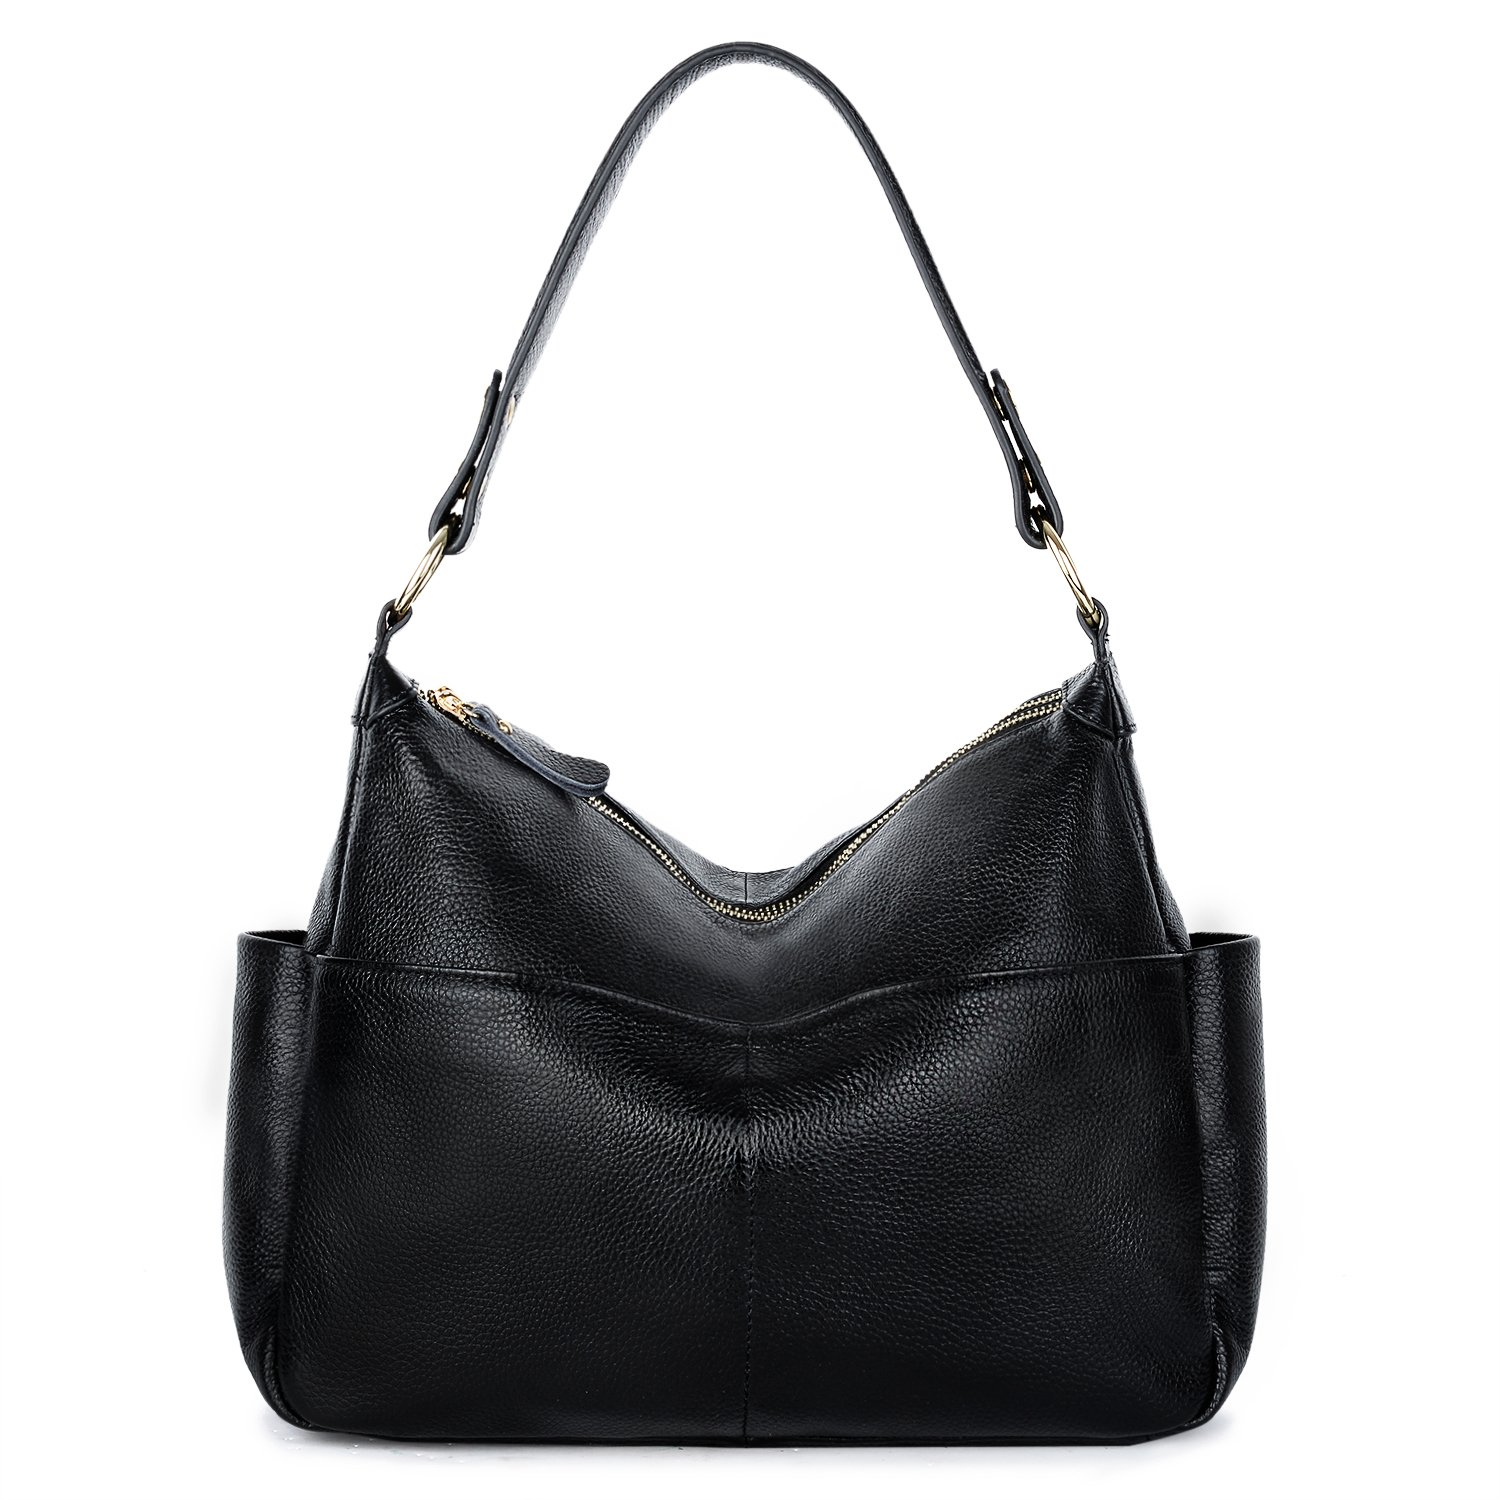 YALUXE Women's Double Zipper Soft Hobo Style Leather Purse Shoulder Bag Black